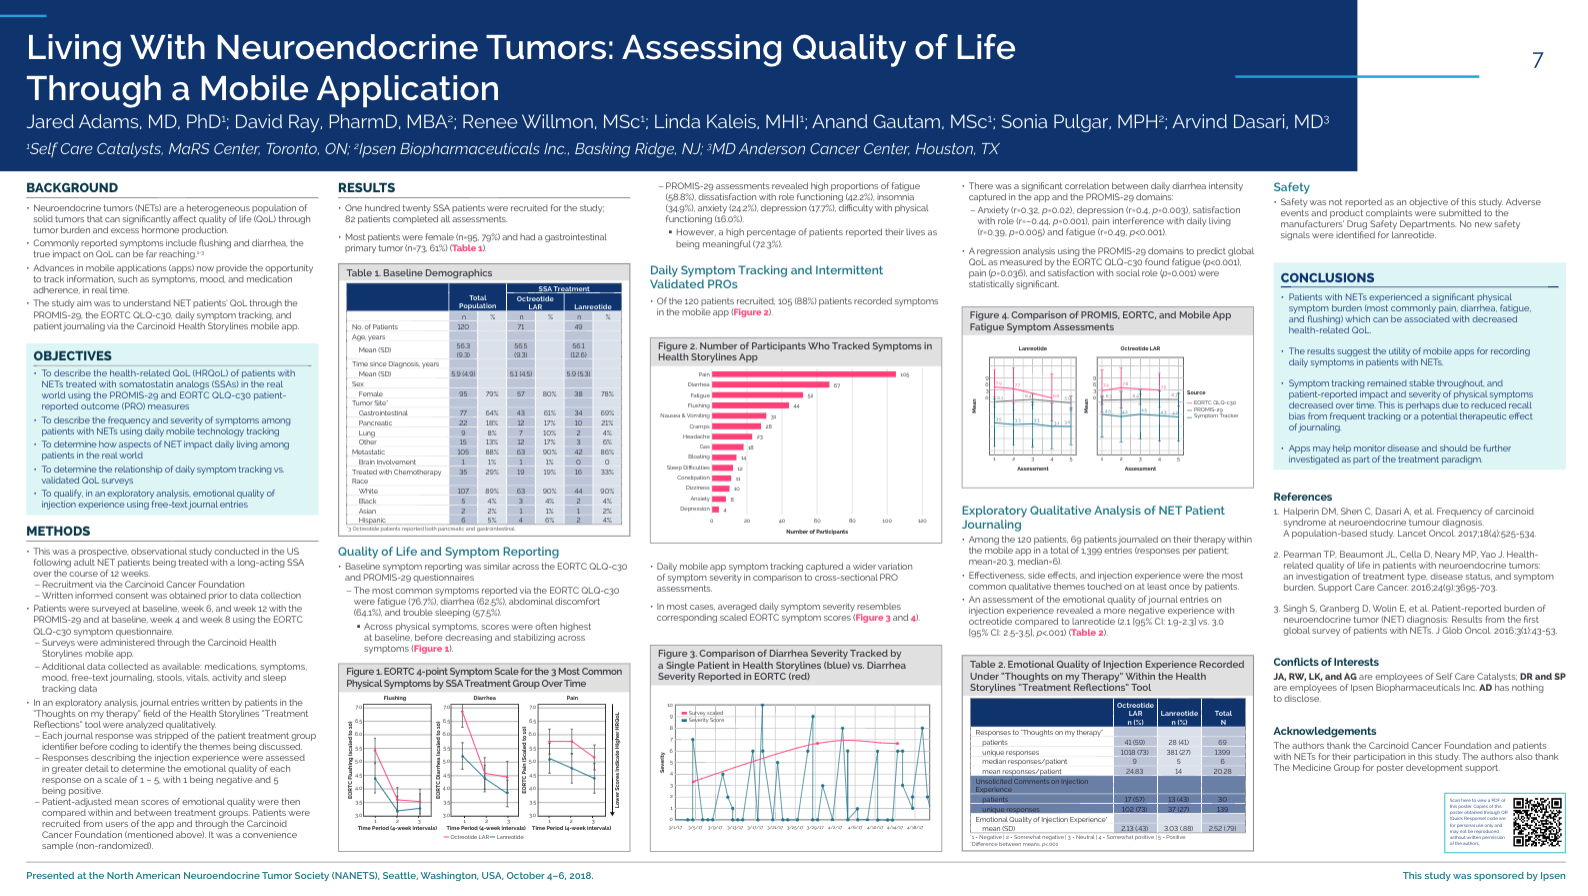 Living with Neuroendocrine Tumors: Assessing Quality fo Life Through a Mobile Application